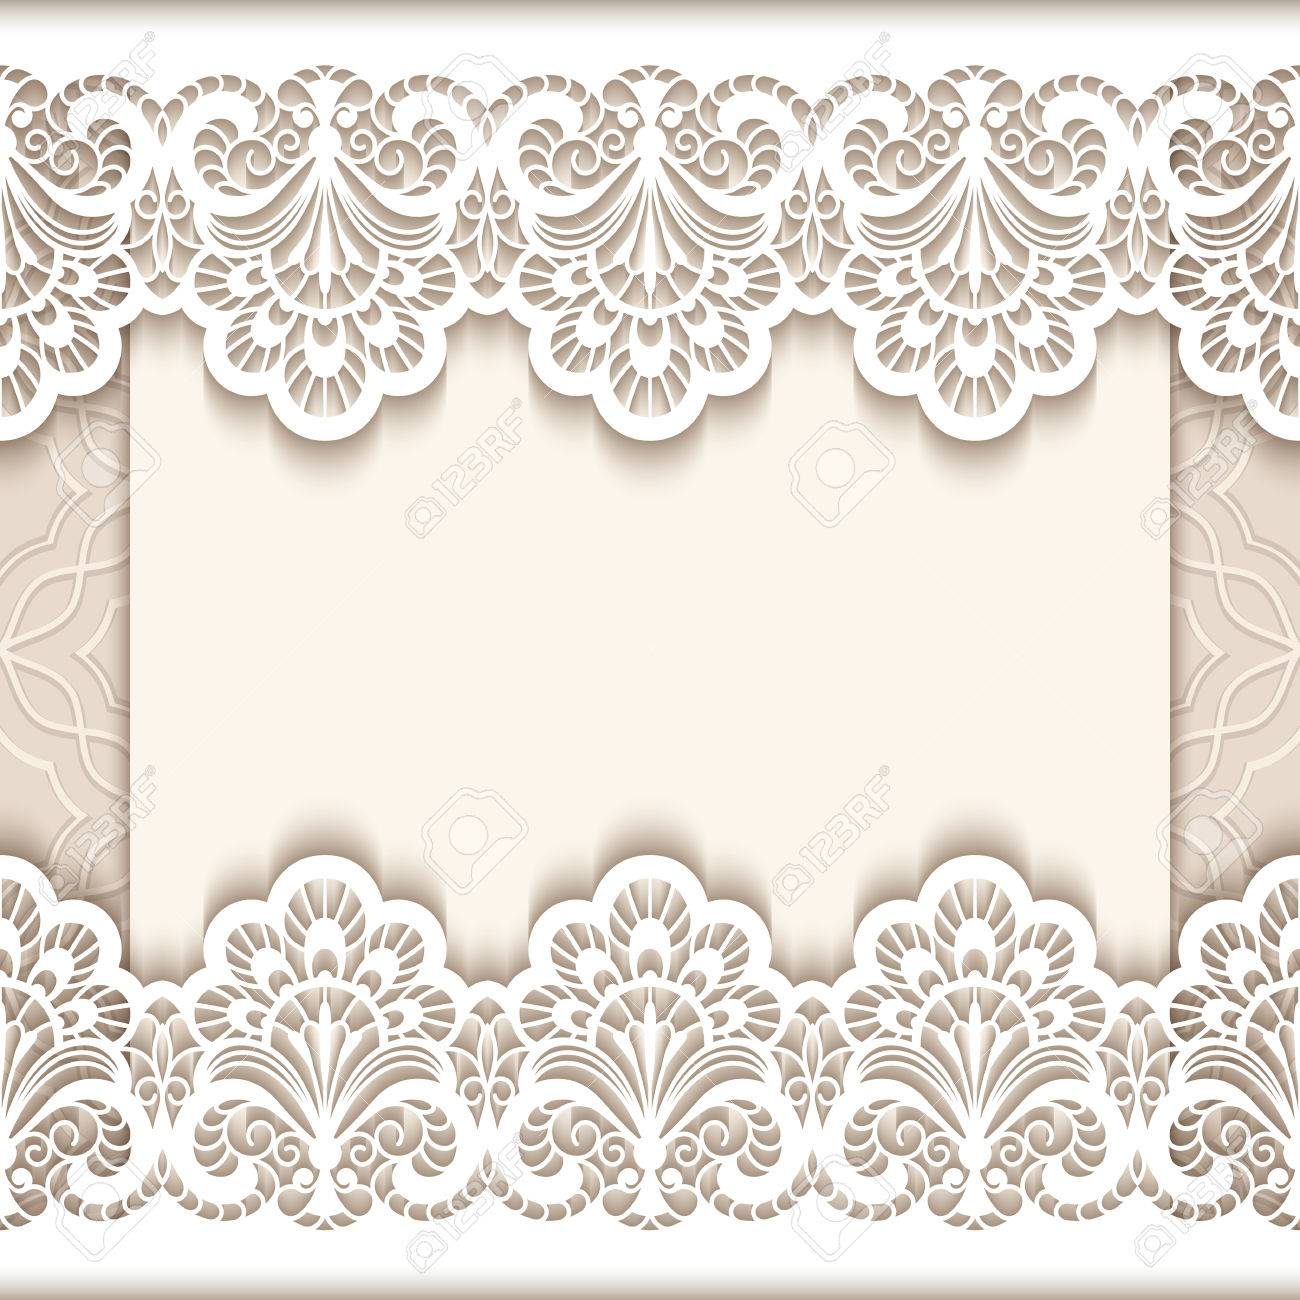 Superb Elegant Save The Date Card With Cutout Paper Lace Borders, Vintage Wedding  Invitation Or Announcement